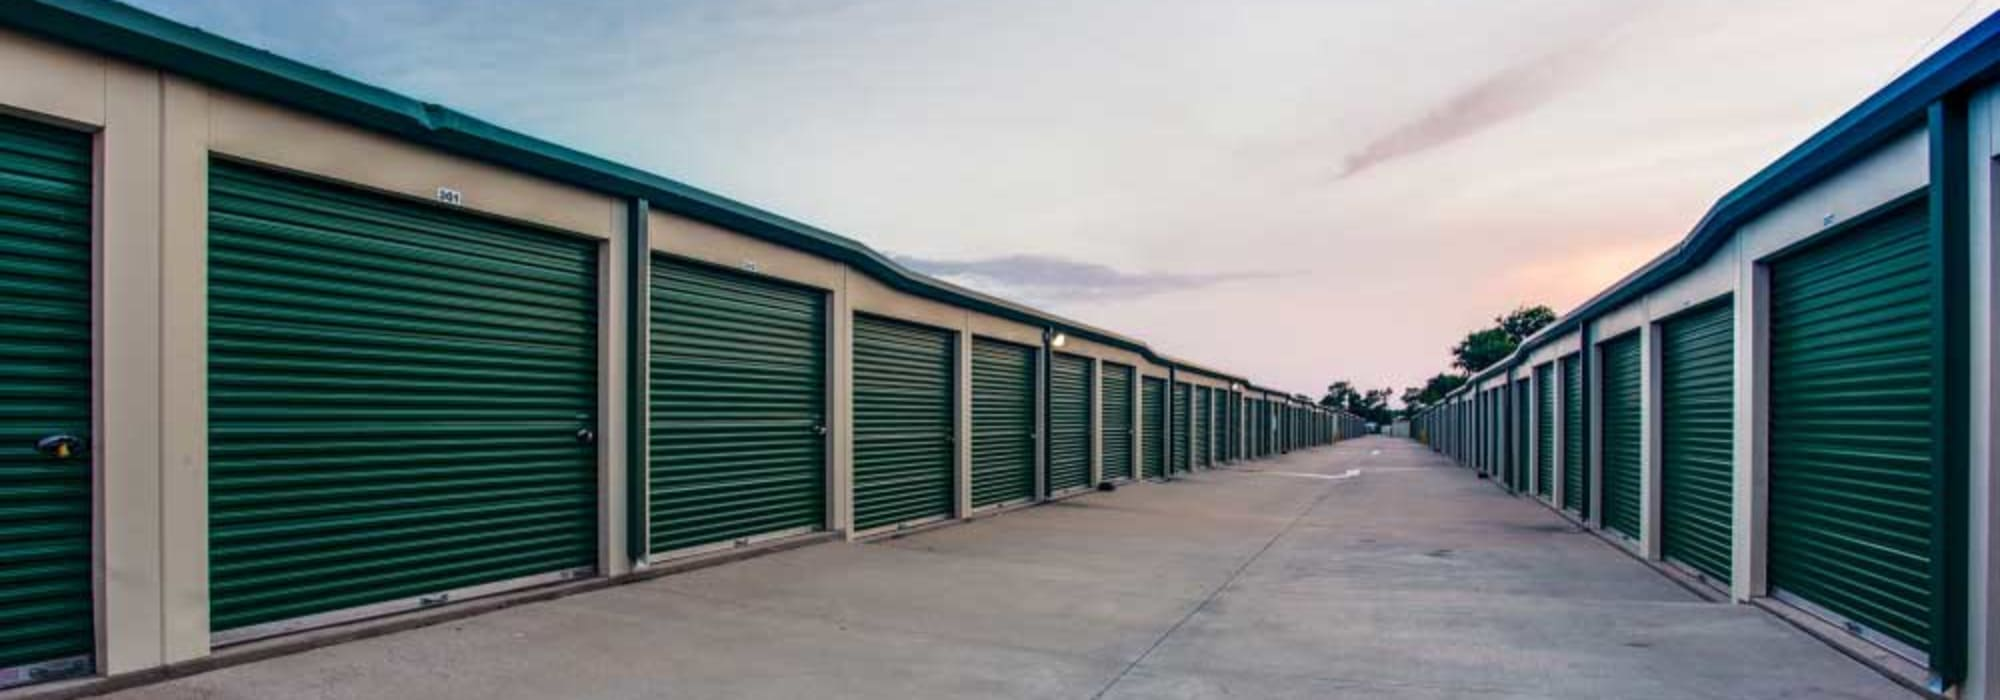 Advantage Storage - Saginaw self storage in Fort Worth, Texas